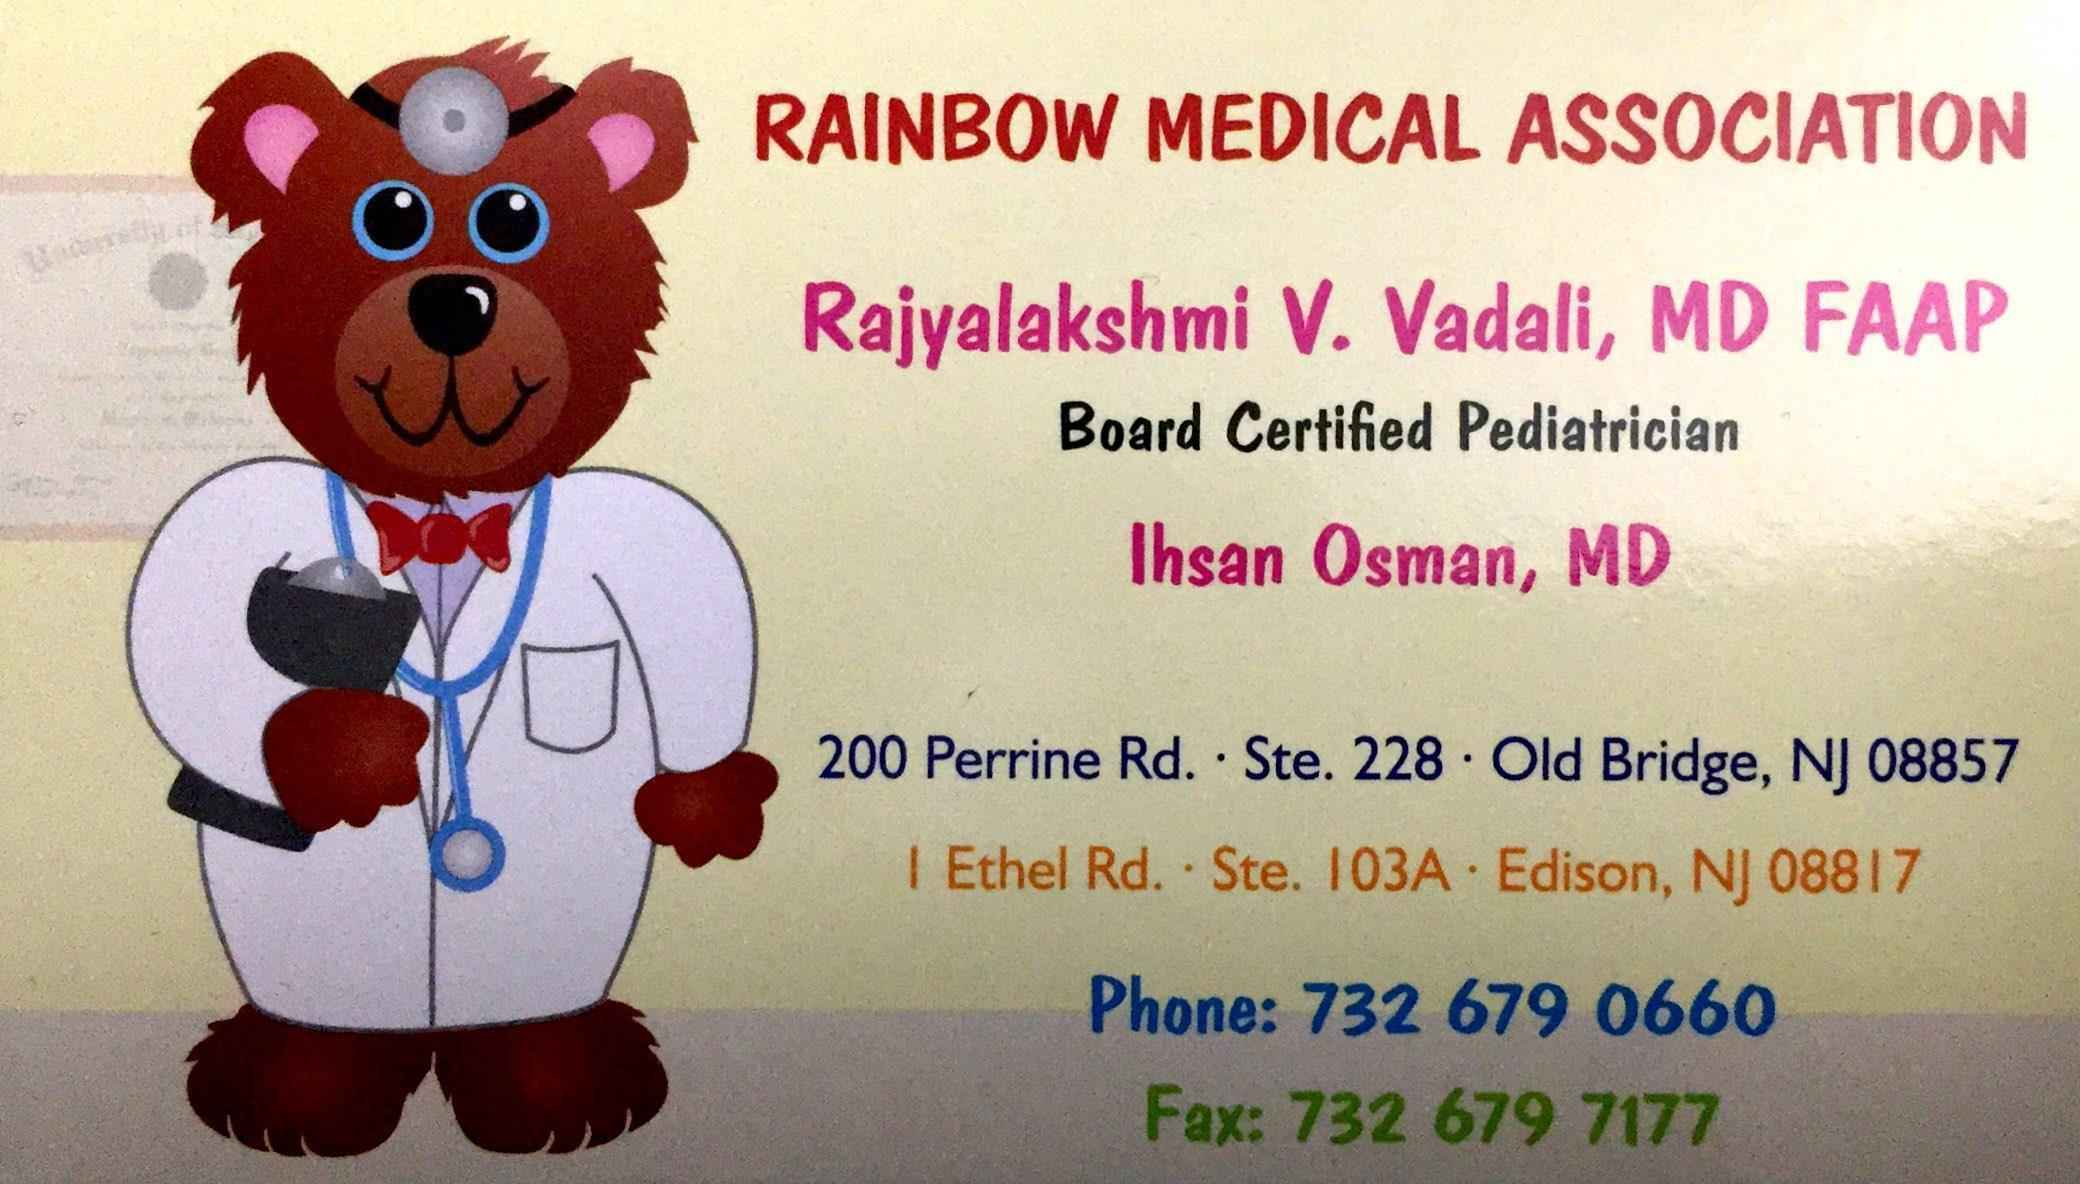 Dr. Rajyalakshmi Vadali - Rainbow Medical Association (732) 679-0660